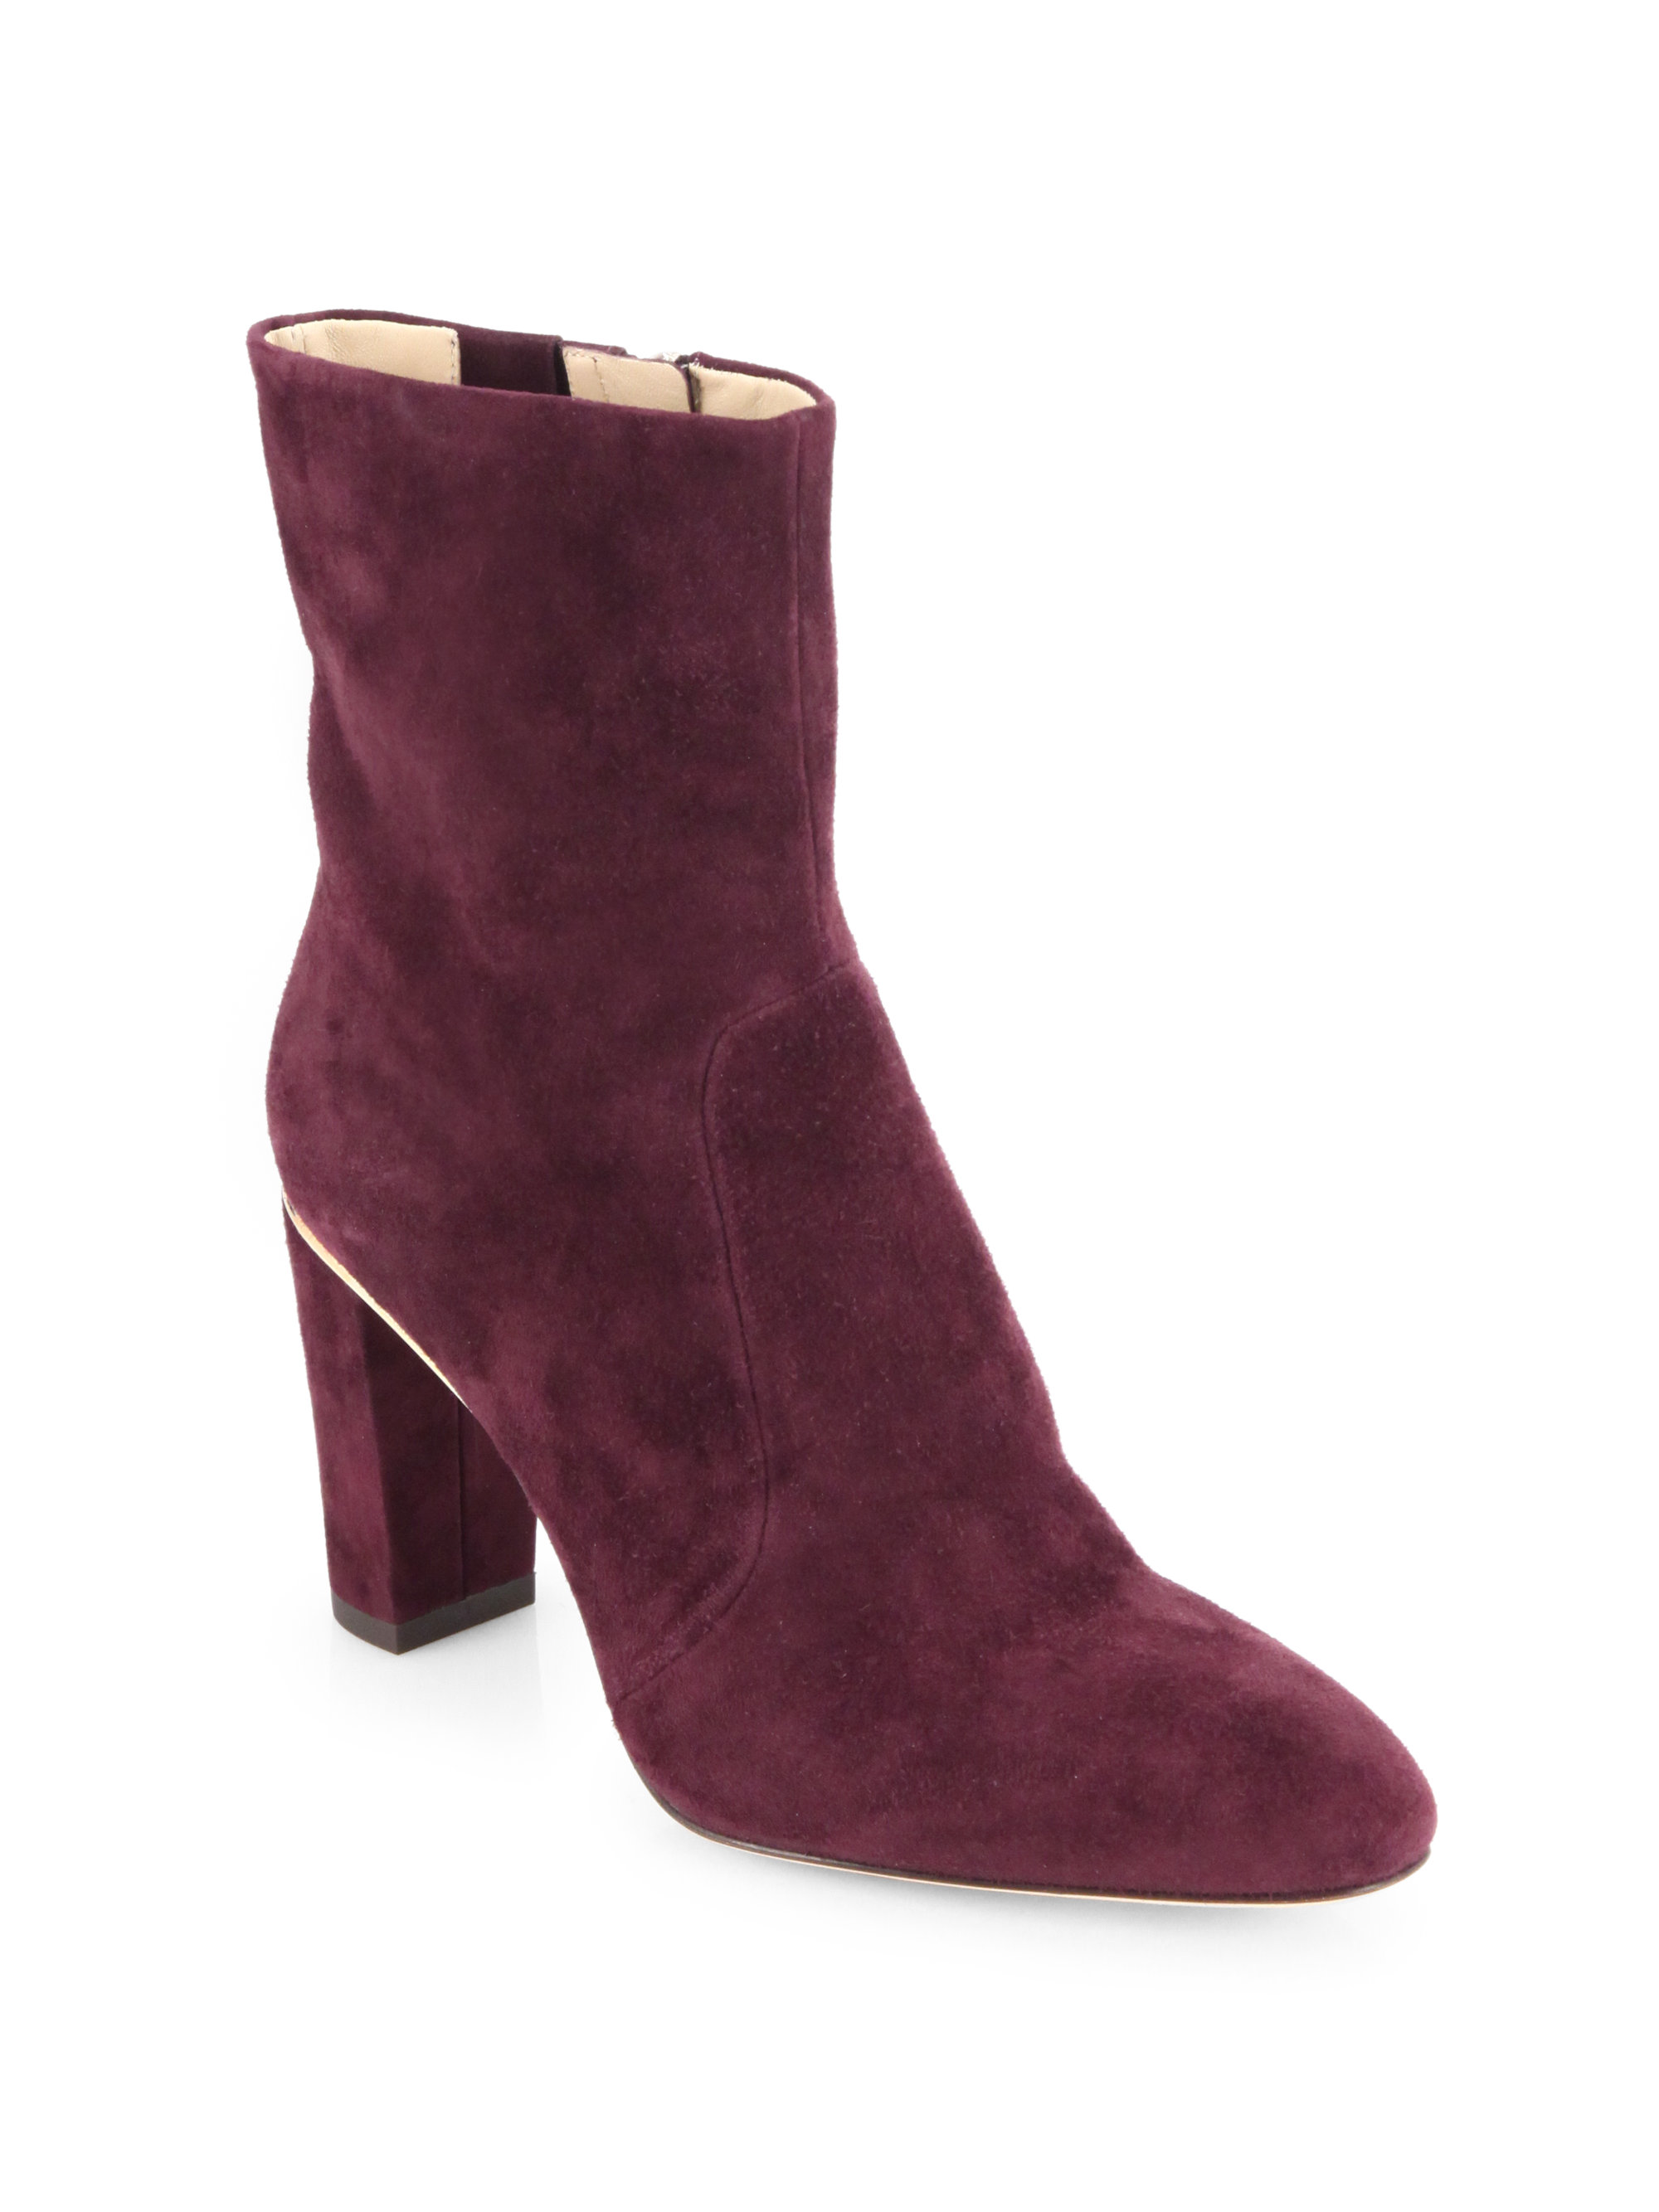 b brian atwood christelle suede ankle boots in purple